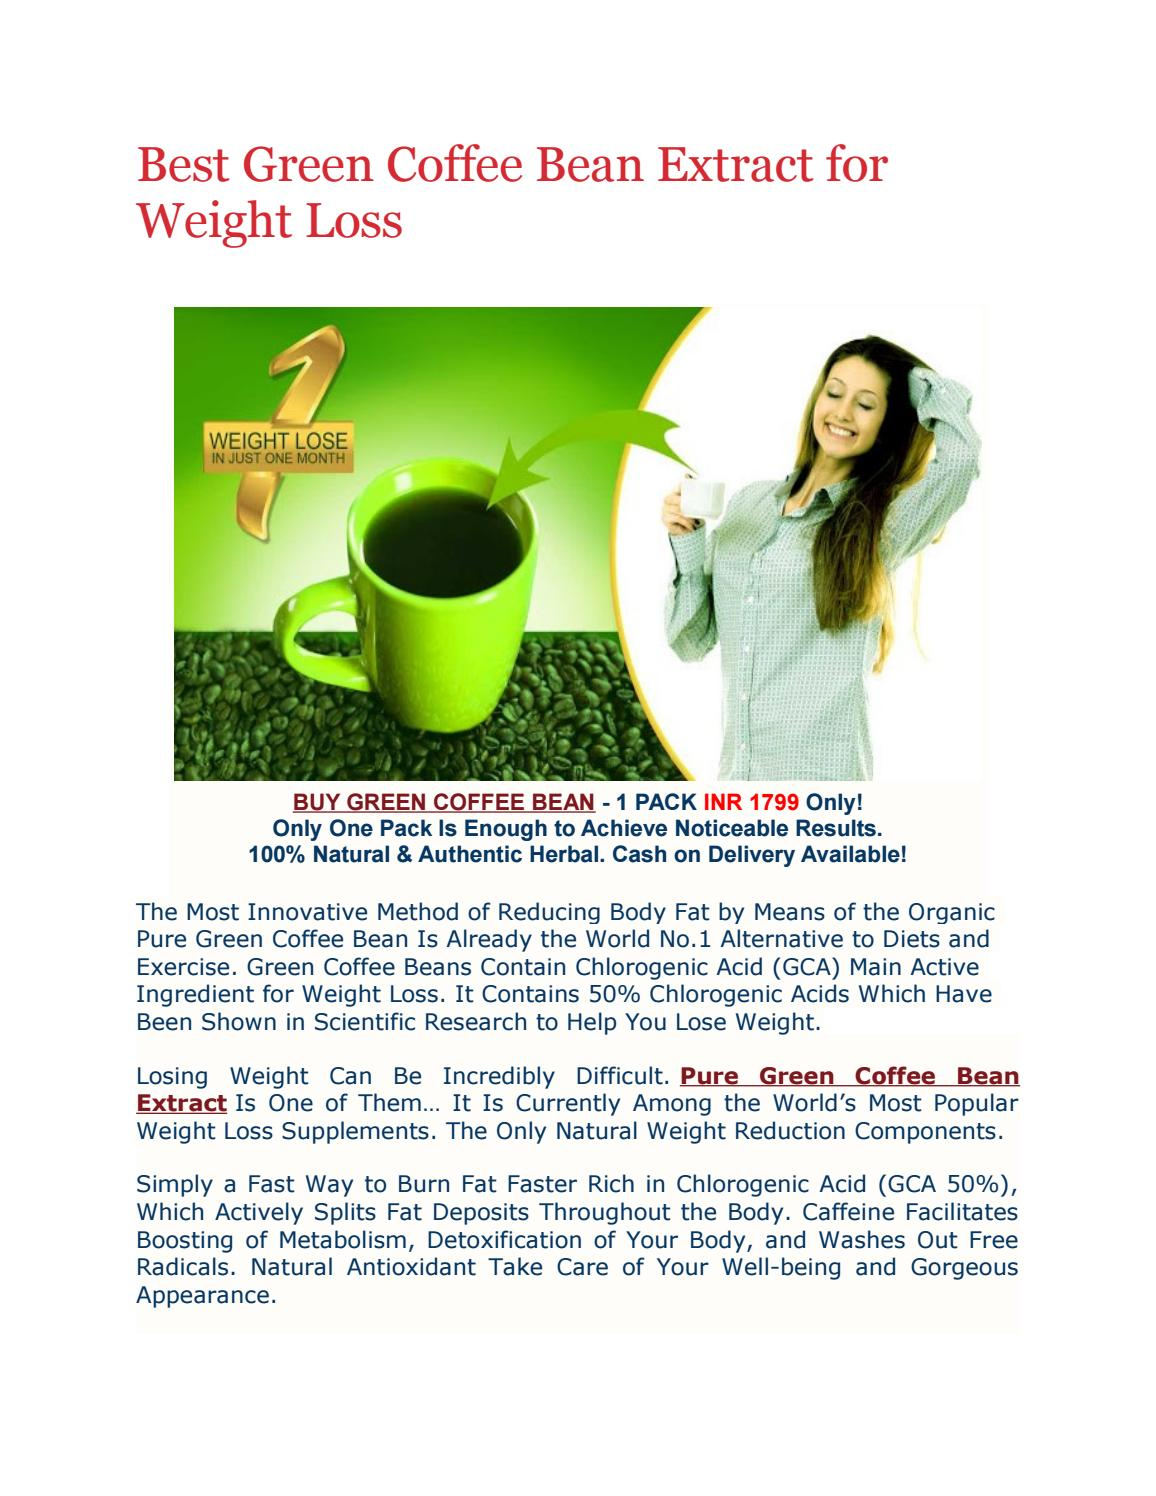 Best Green Coffee Bean Extract For Weight Loss By Simply Herbal